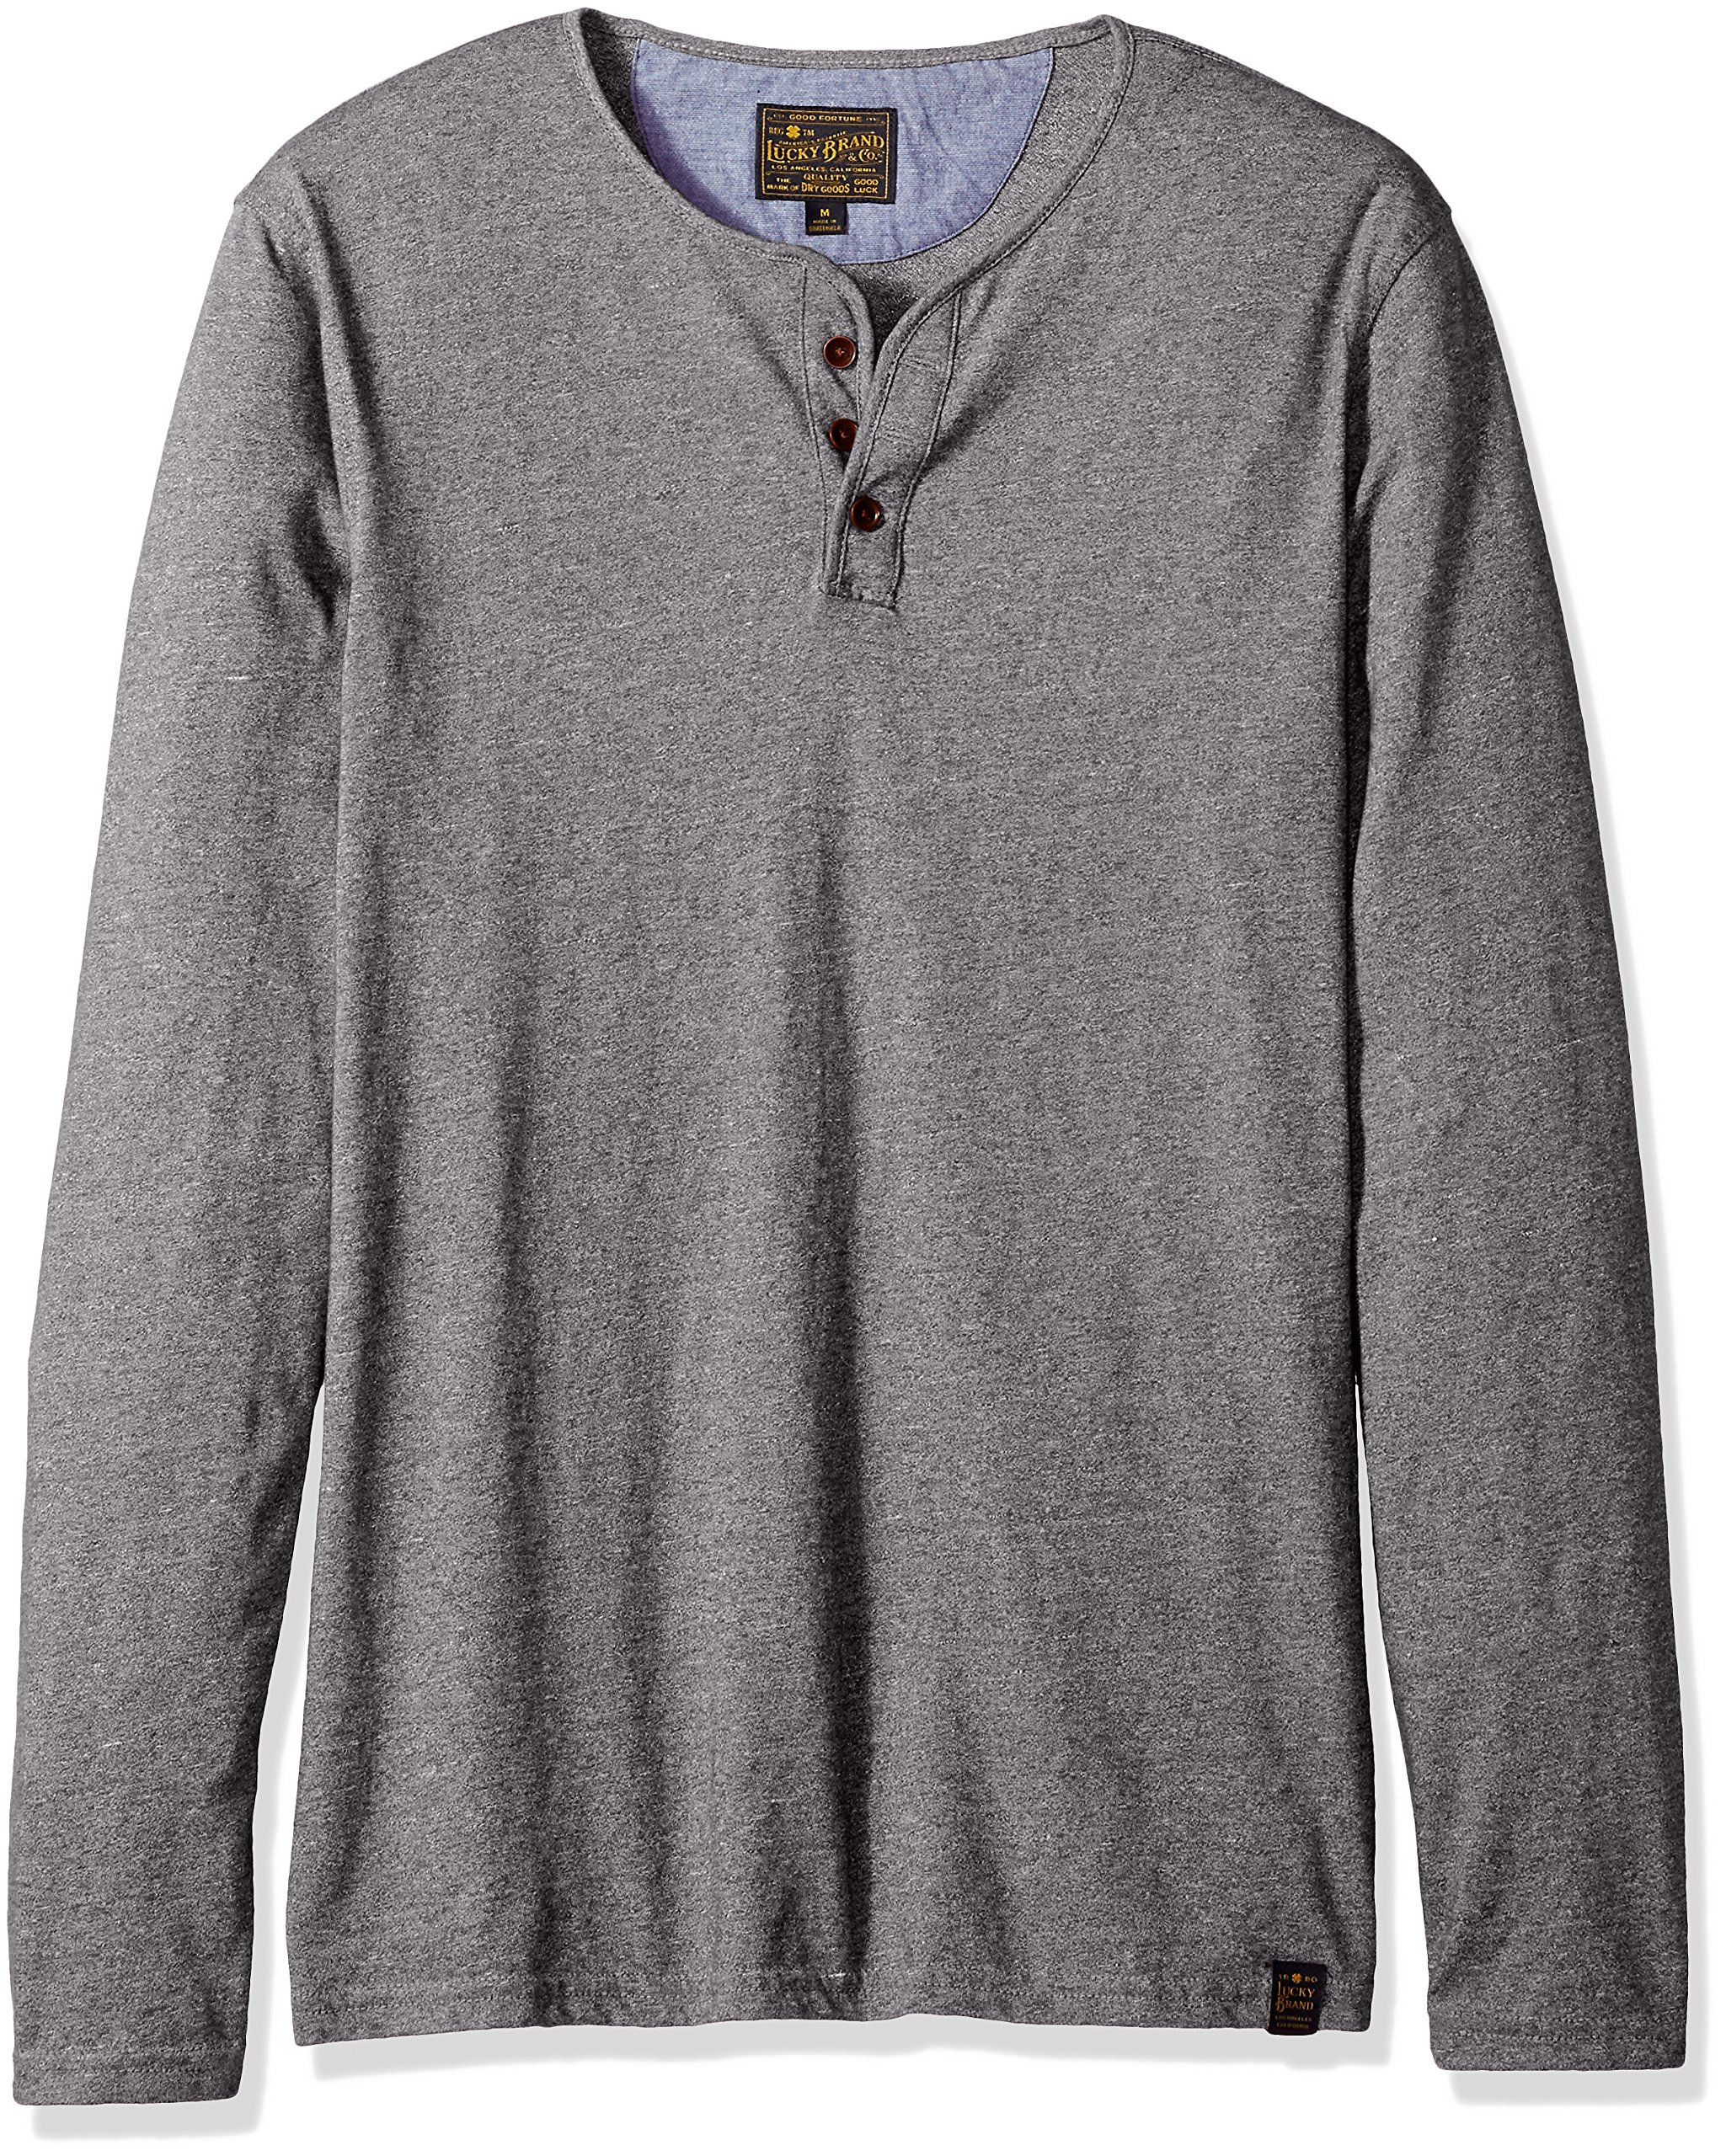 Lucky Brand Men's Long Sleeve Y Neck T-Shirt, Heather Grey, M